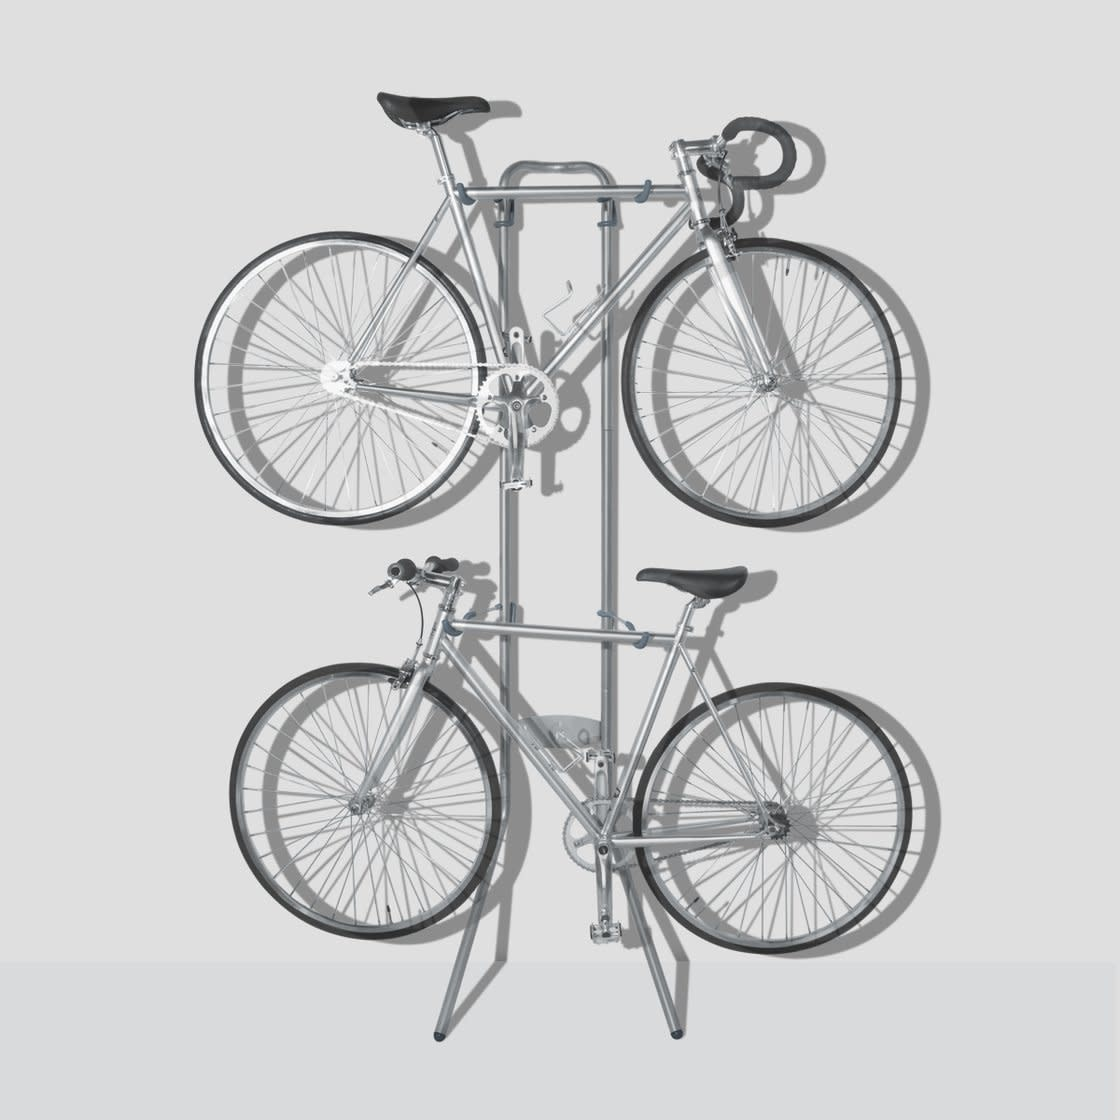 Two Bike Gravity Stand: Holds Two Bikes